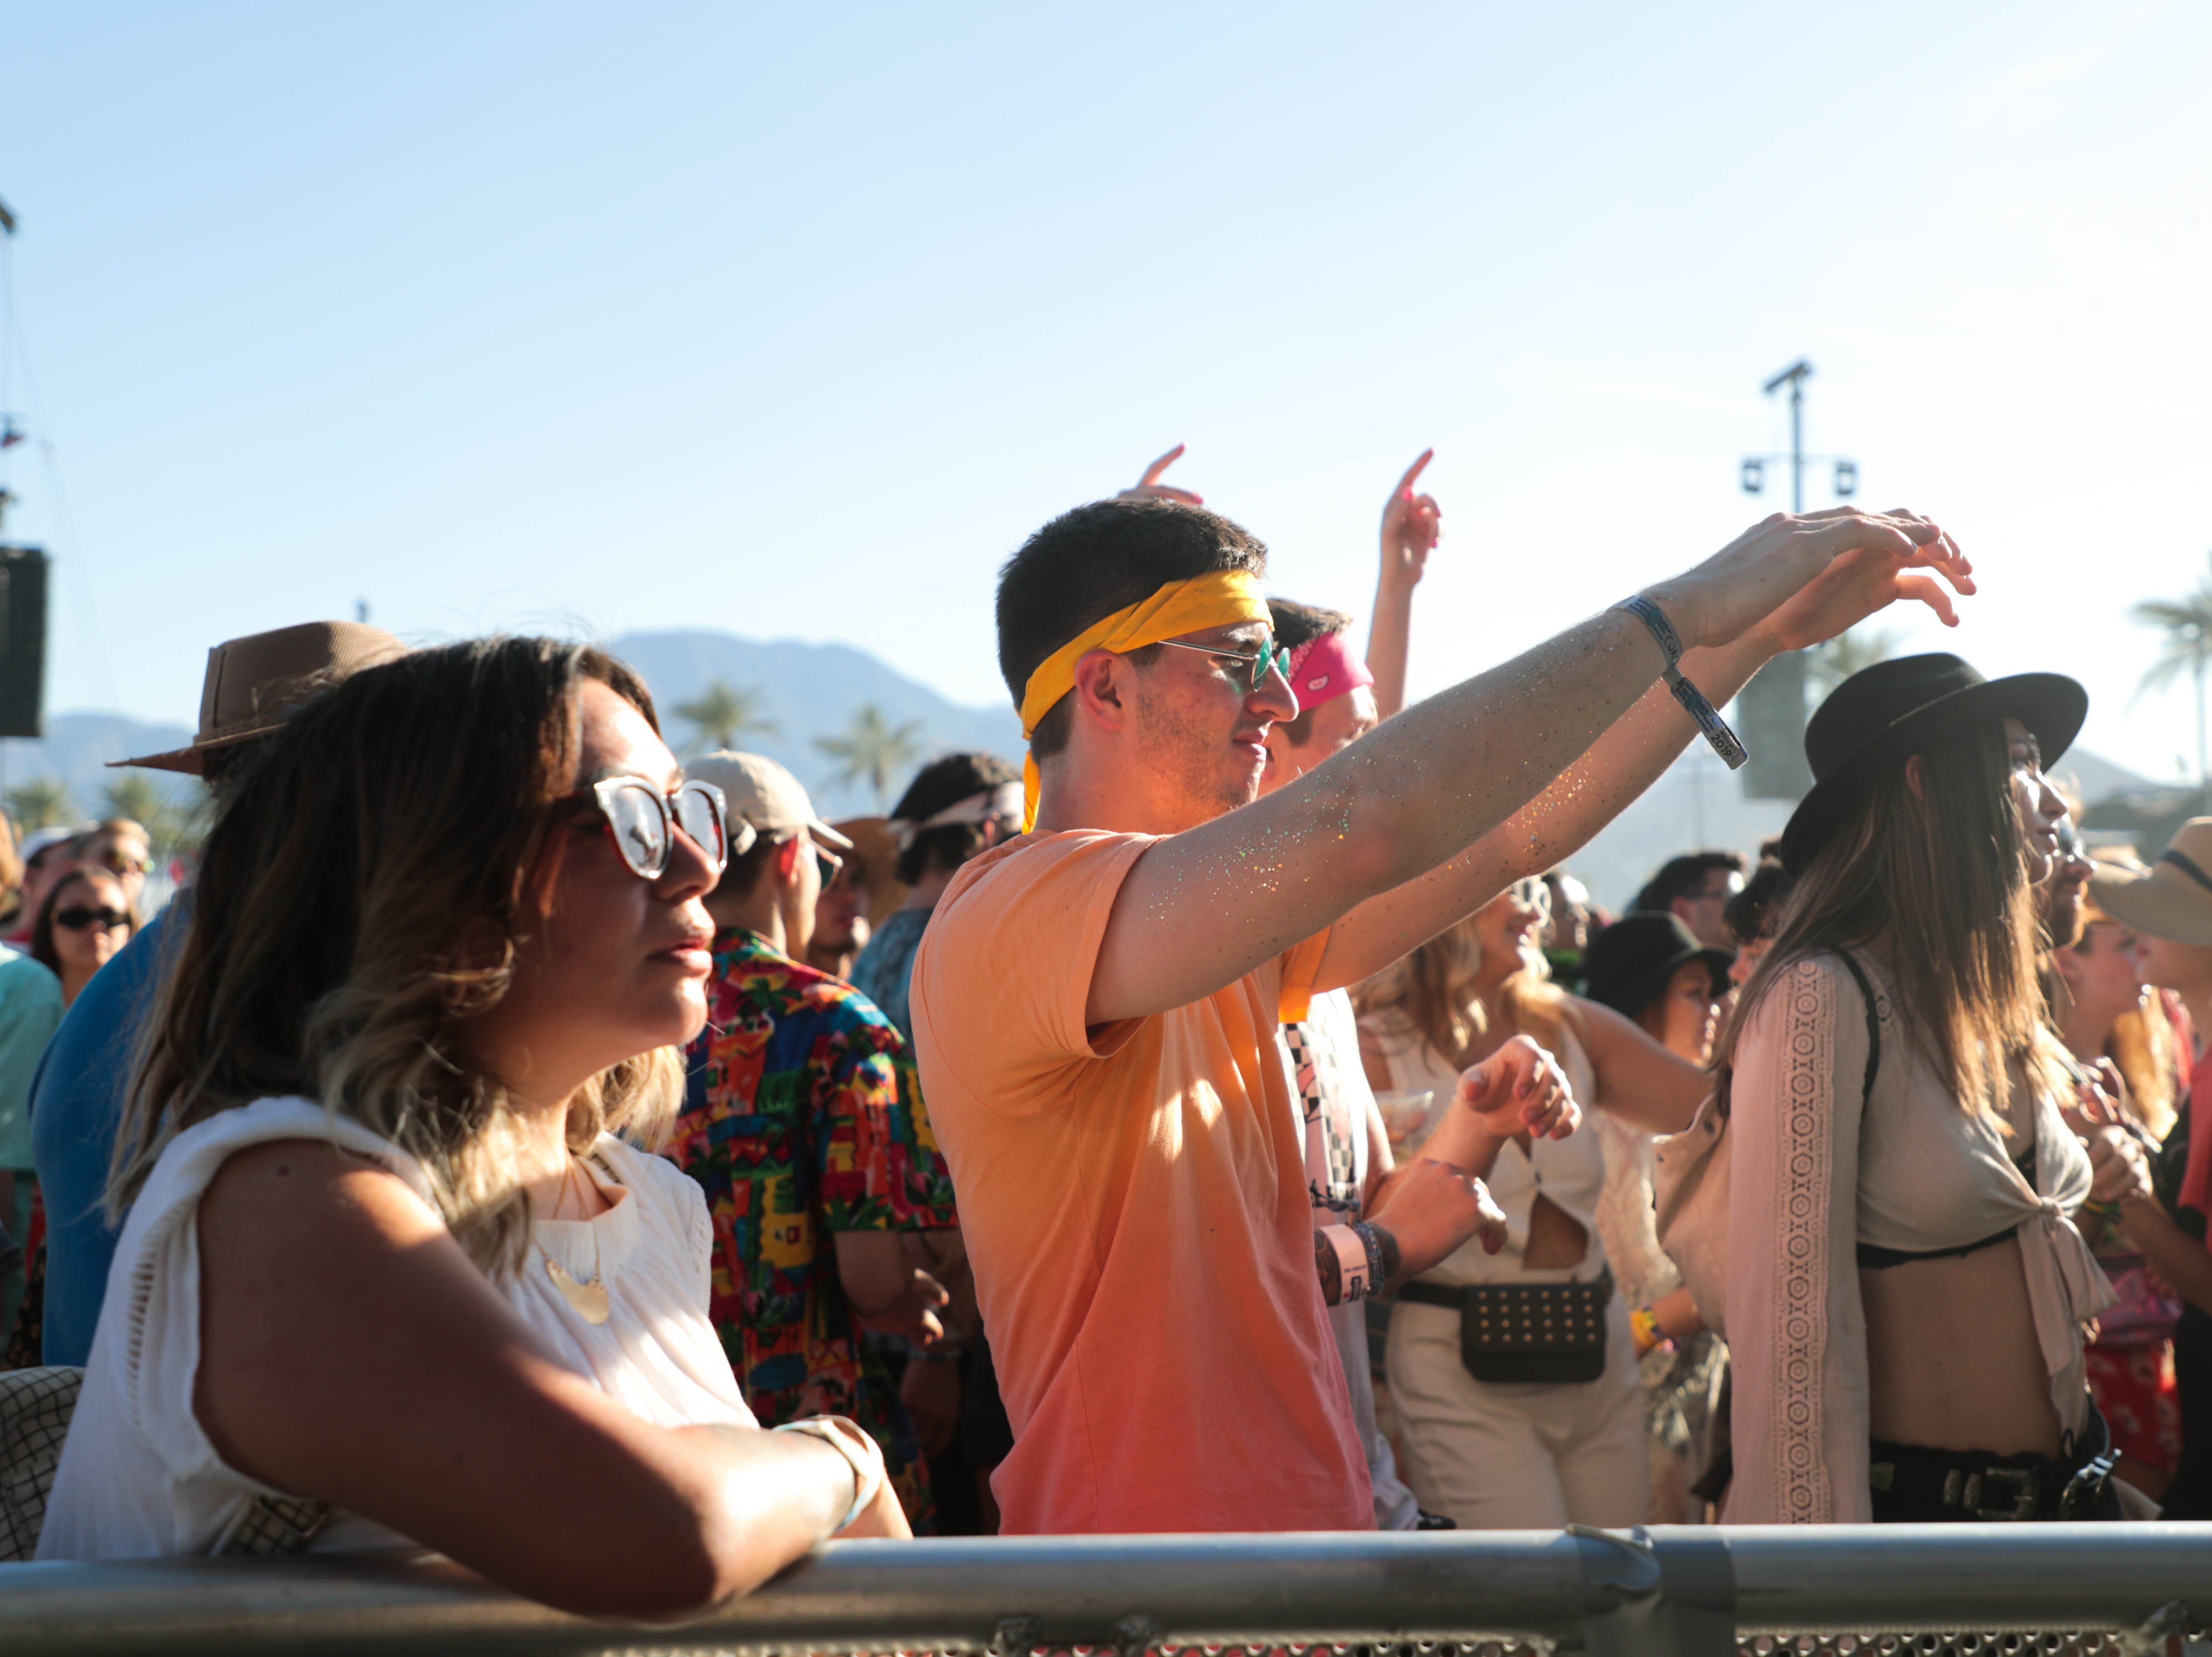 Fans dance as Mac Demarco performs at Coachella Valley Music and Arts Festival on Saturday, April 13, 2019.